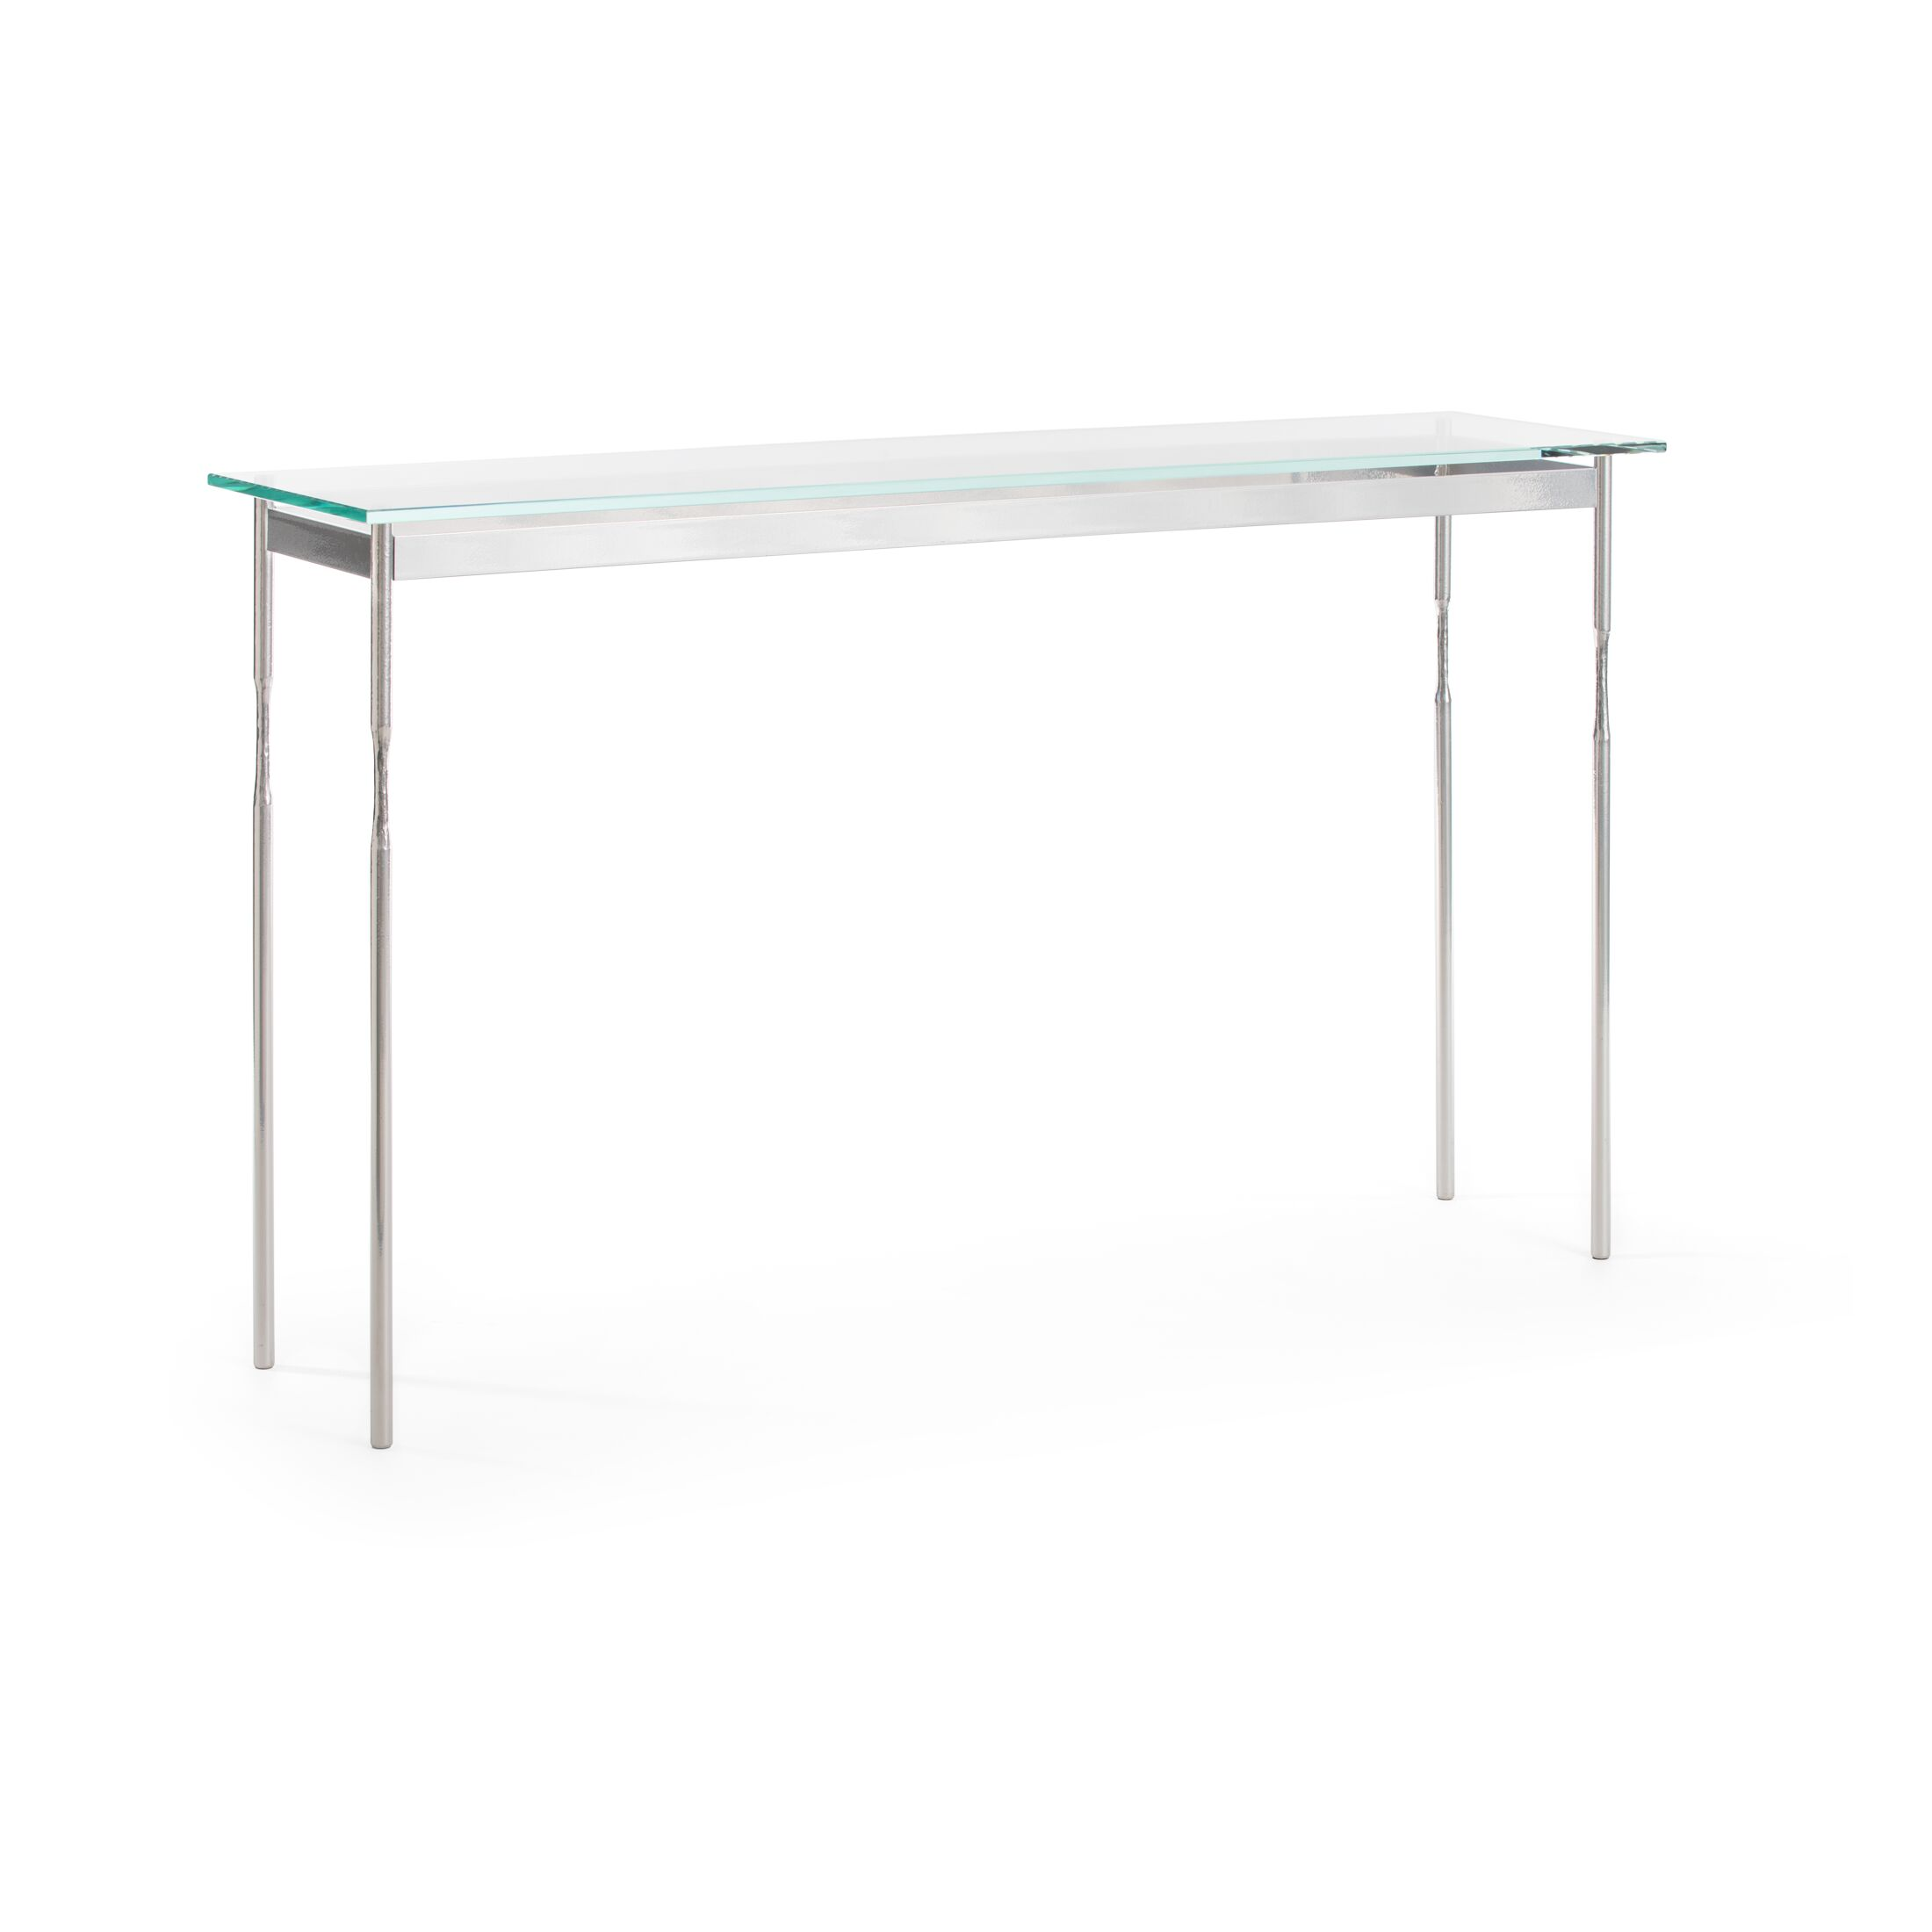 Thumbnail for Senza Console Table